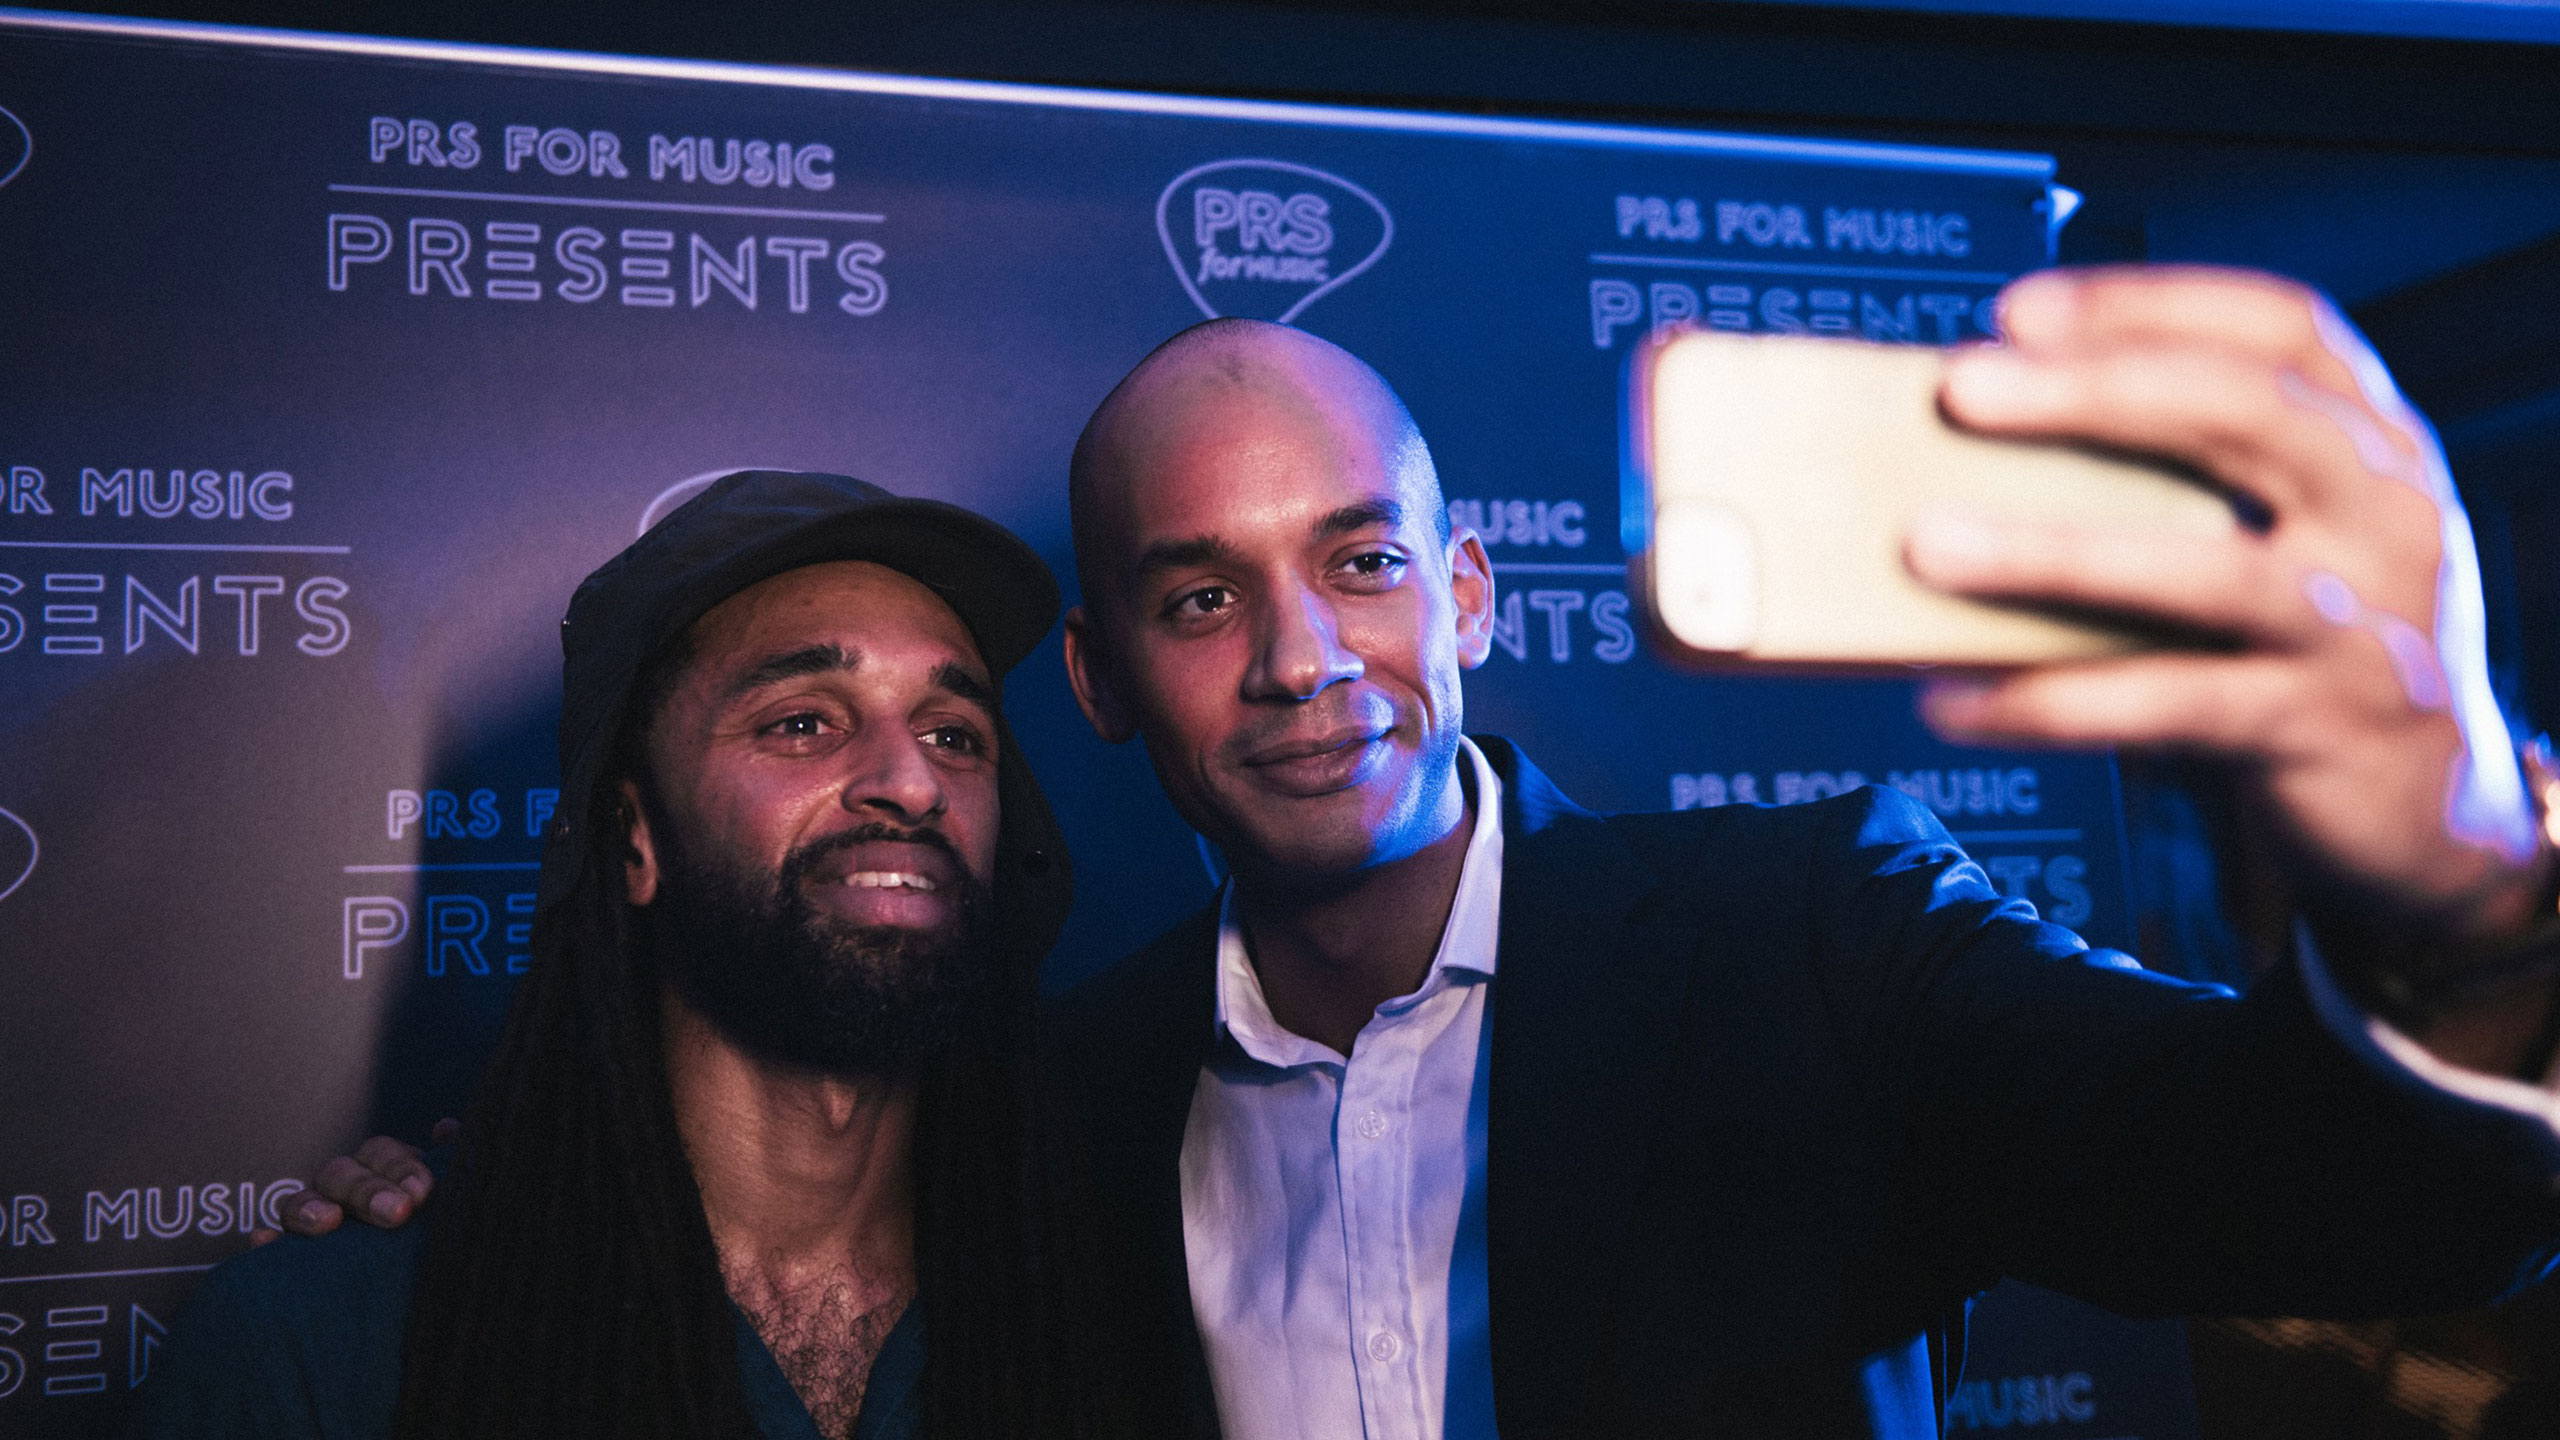 Chuka Umunna (PRS for Music ambassador) takes a selfie with Andrew Ashong in front of the PRS for Music Presents backdrop